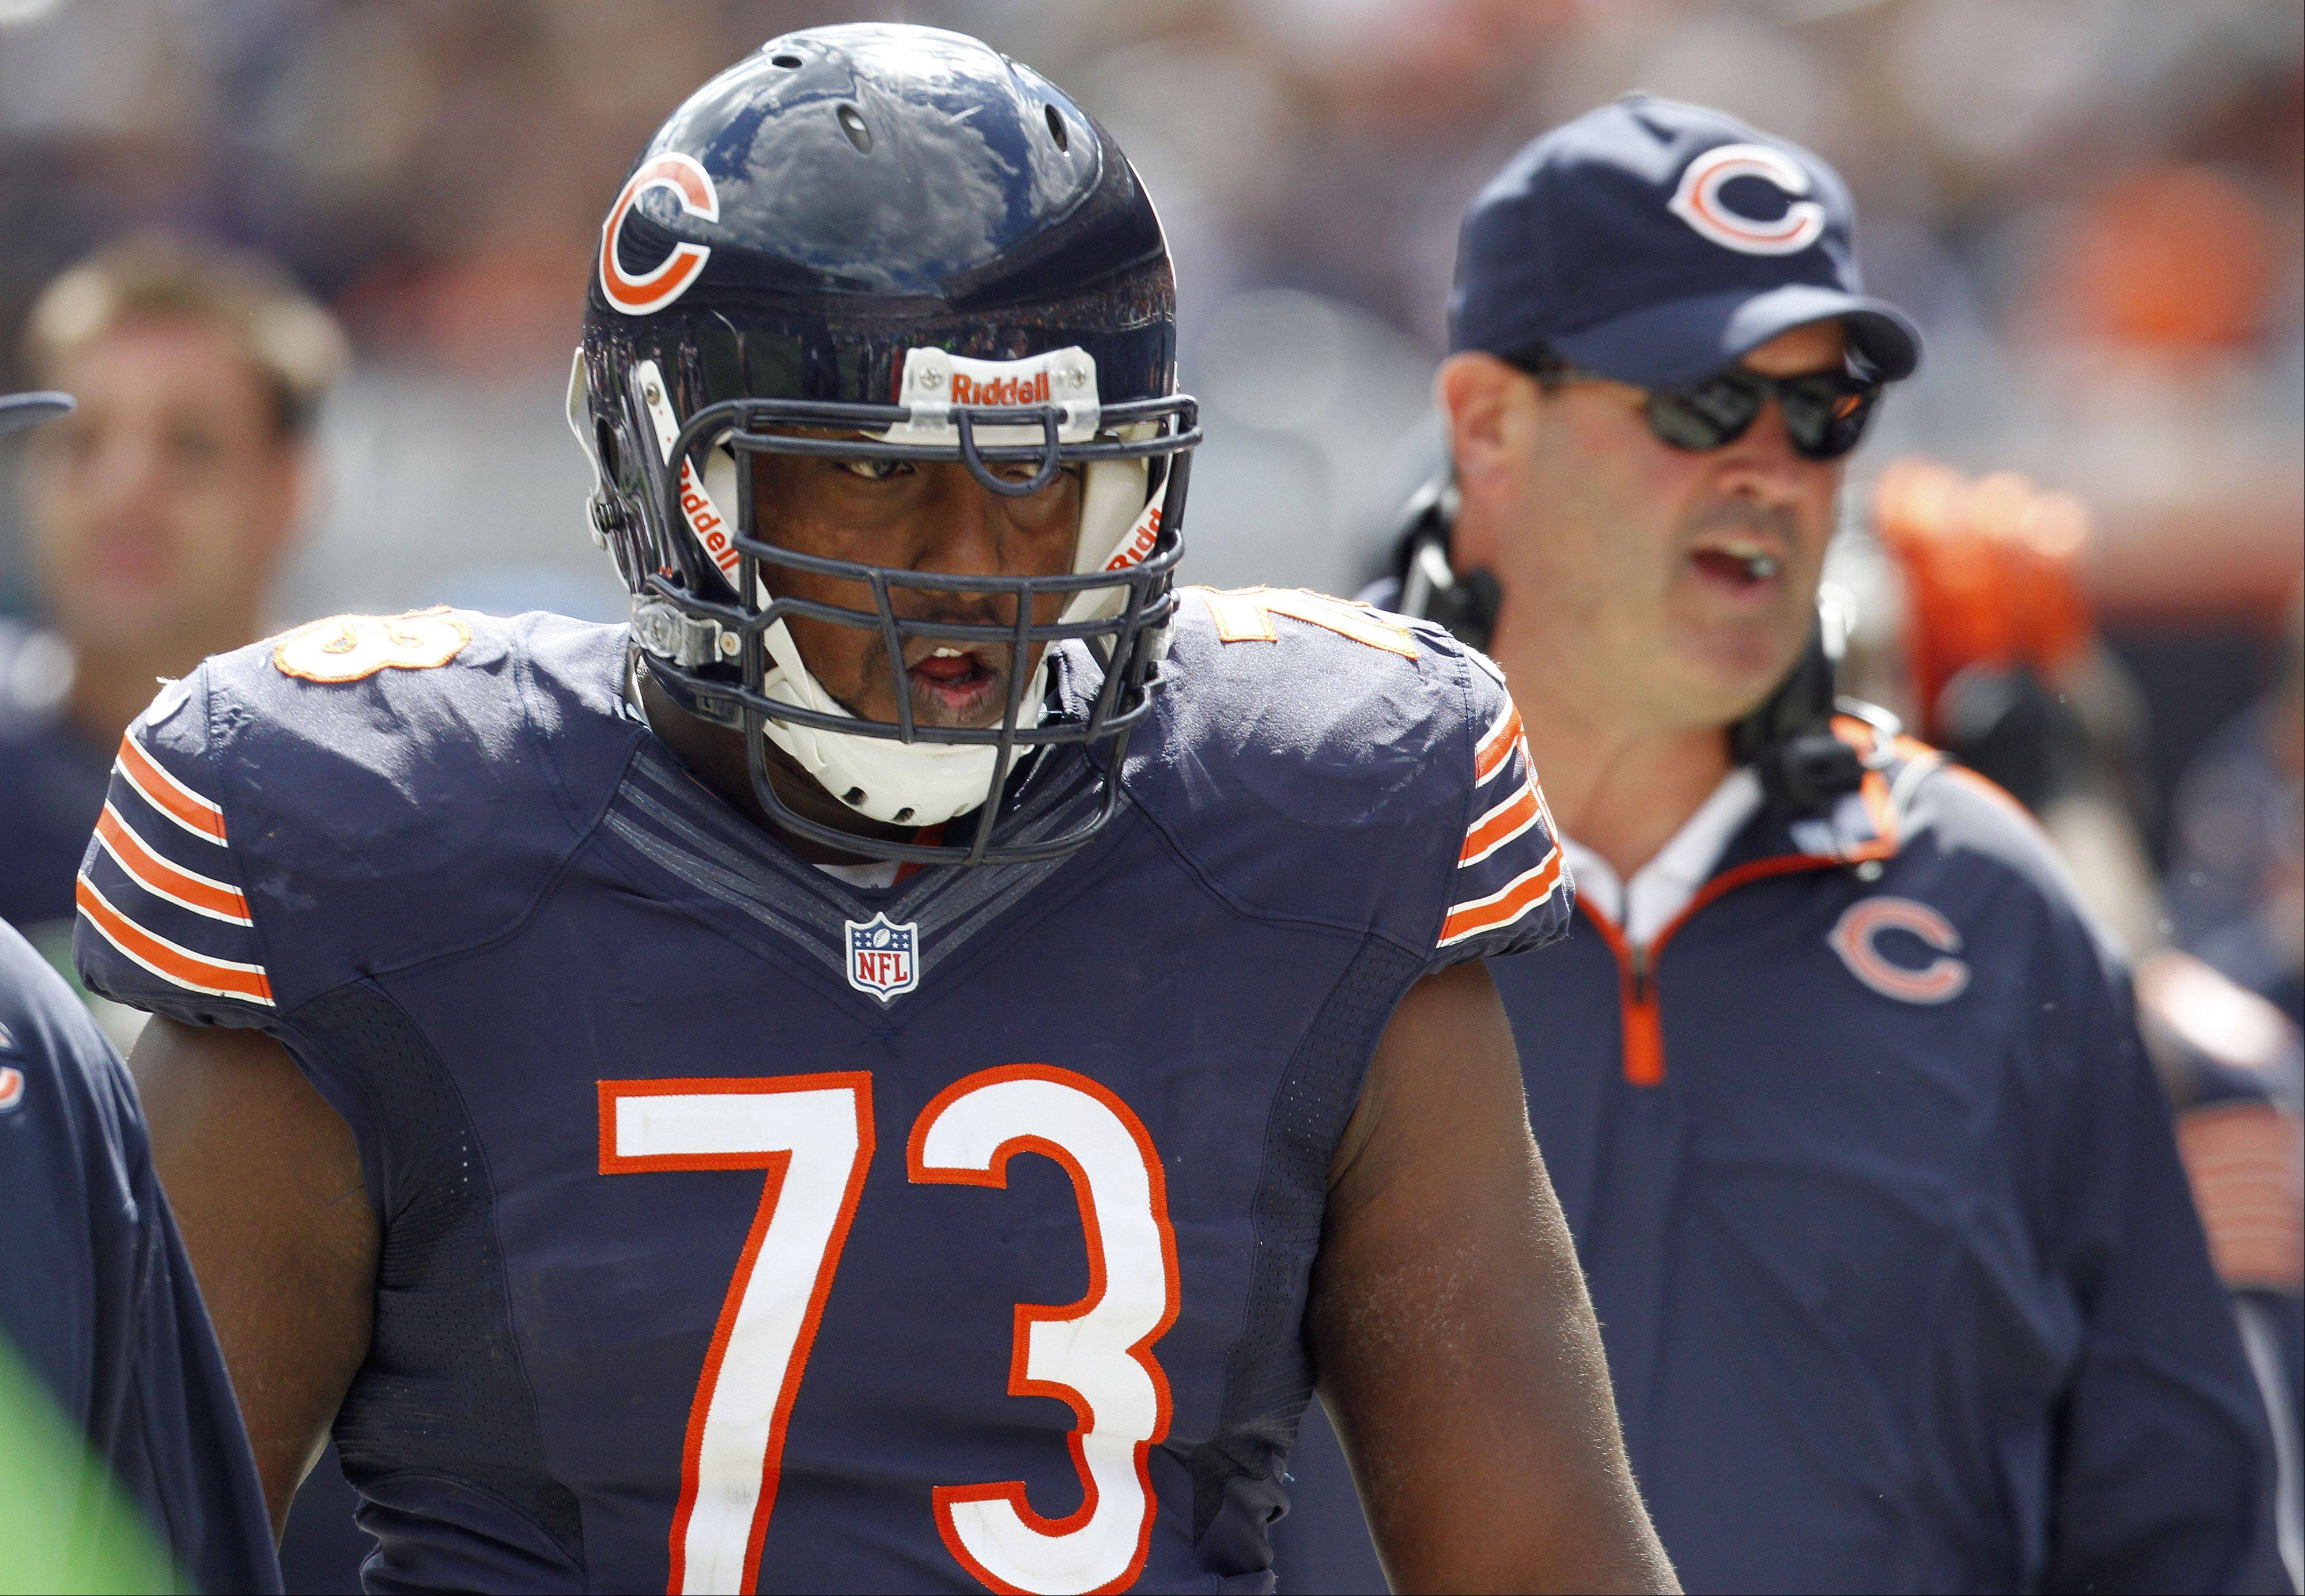 Bears' offensive line starting to put it together